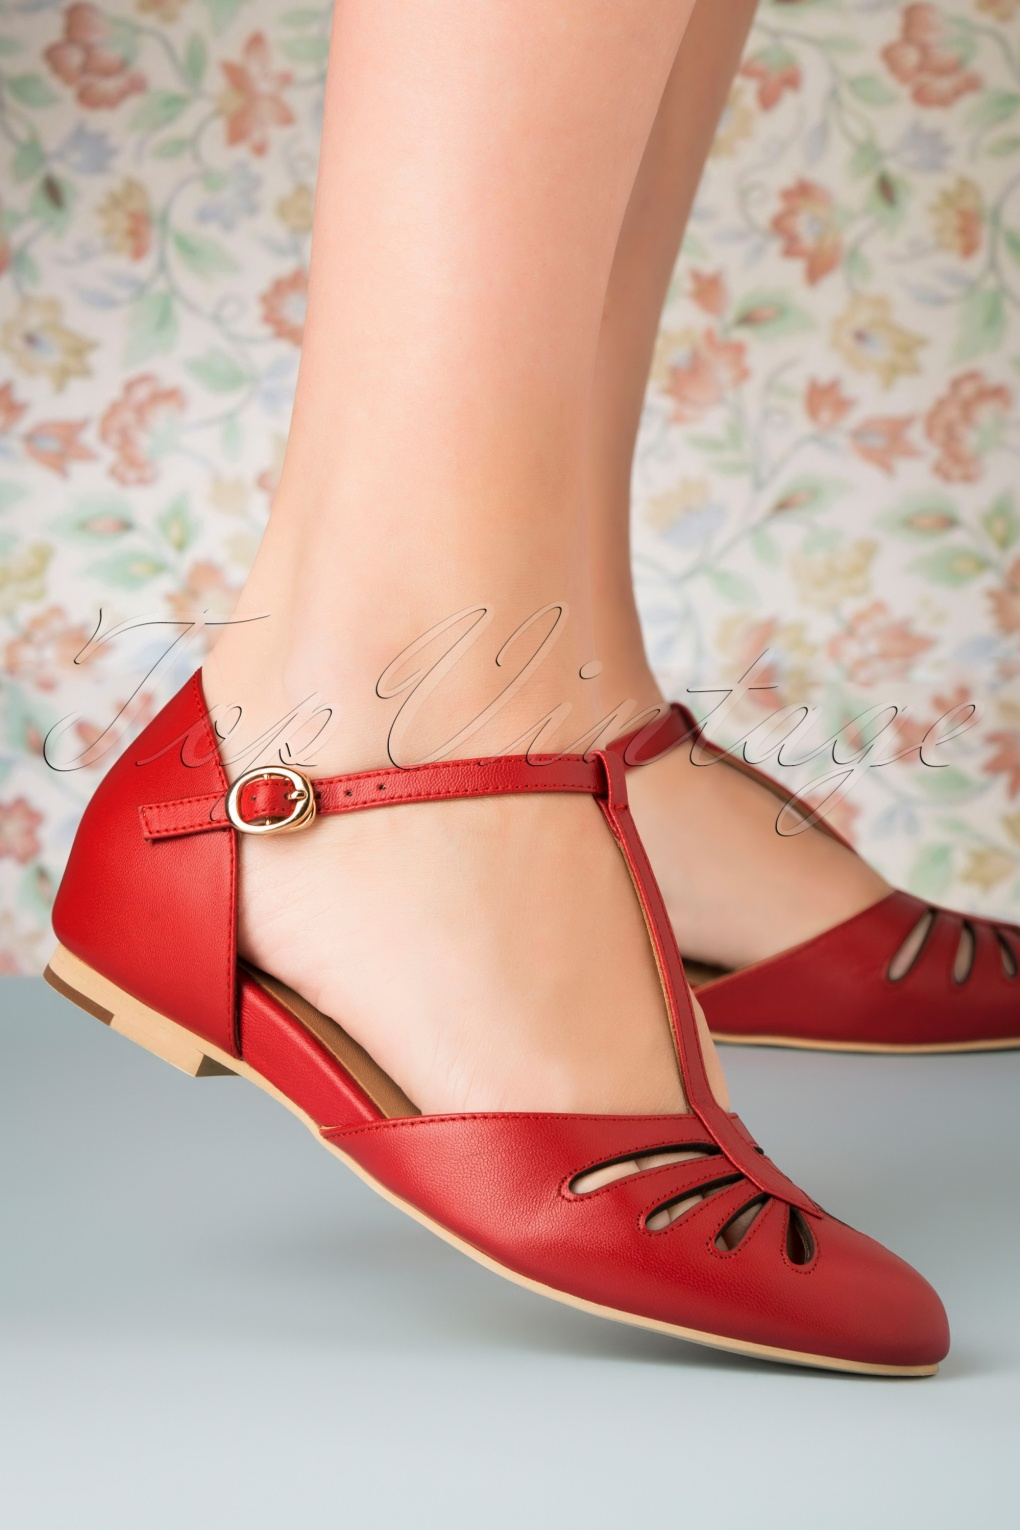 50s Dresses UK | 1950s Dresses, Shoes & Clothing Shops 50s Singapore T-Strap Flats in Red £104.12 AT vintagedancer.com